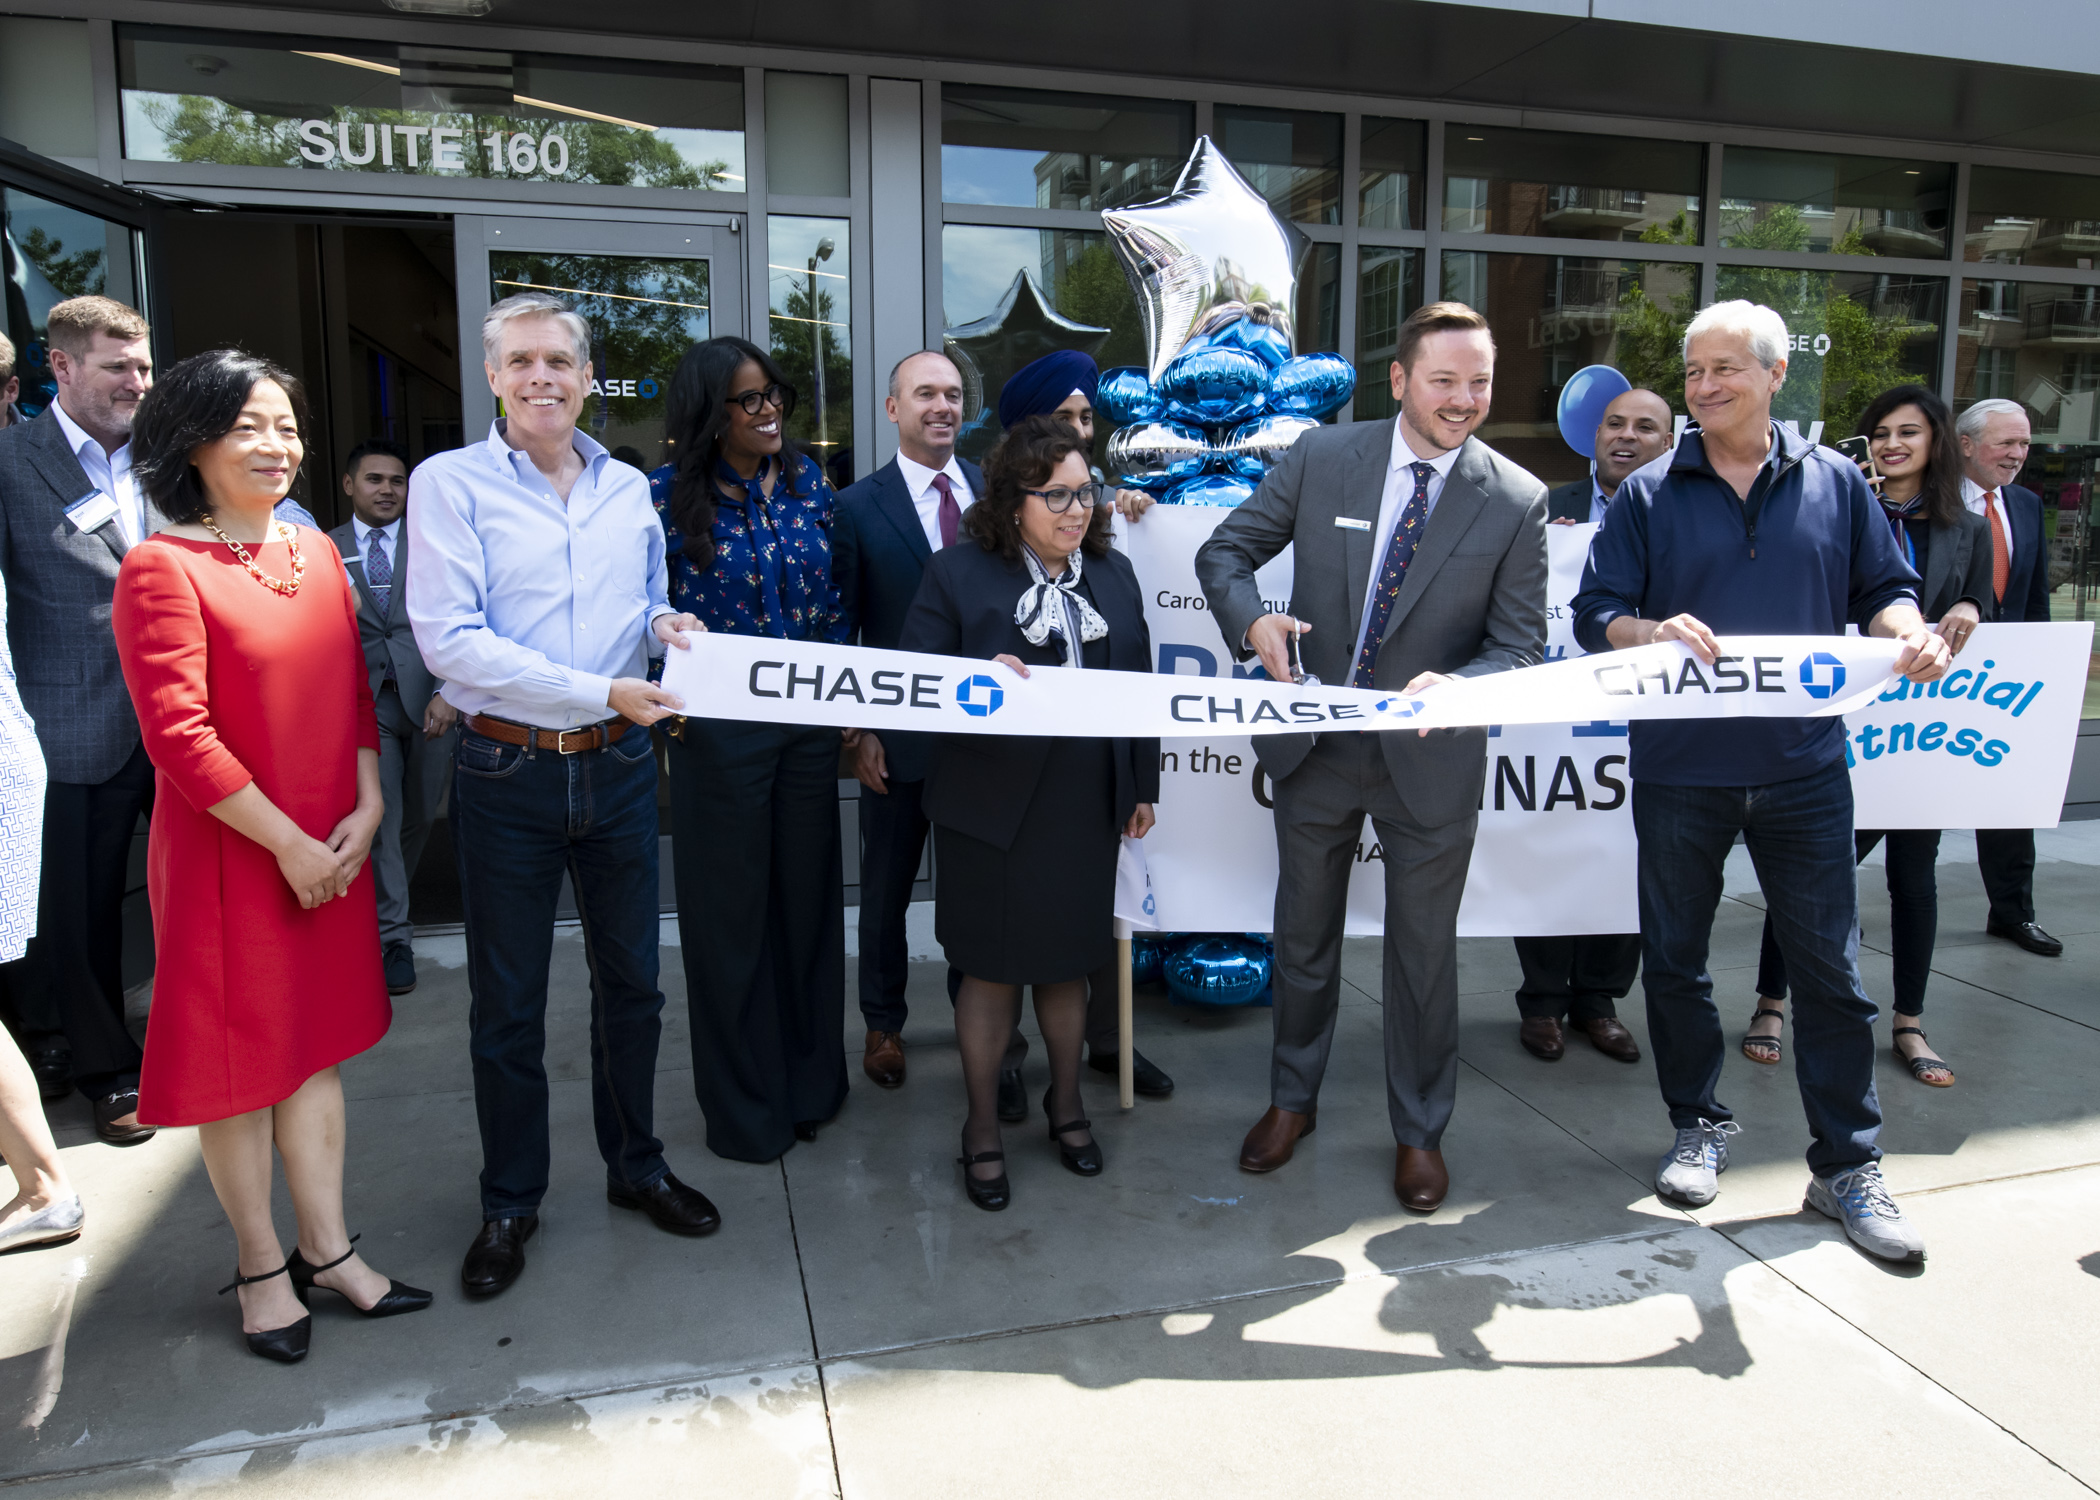 JPMorgan Chase Continues Expansion into North Carolina, Opens First Retail Branch in the State